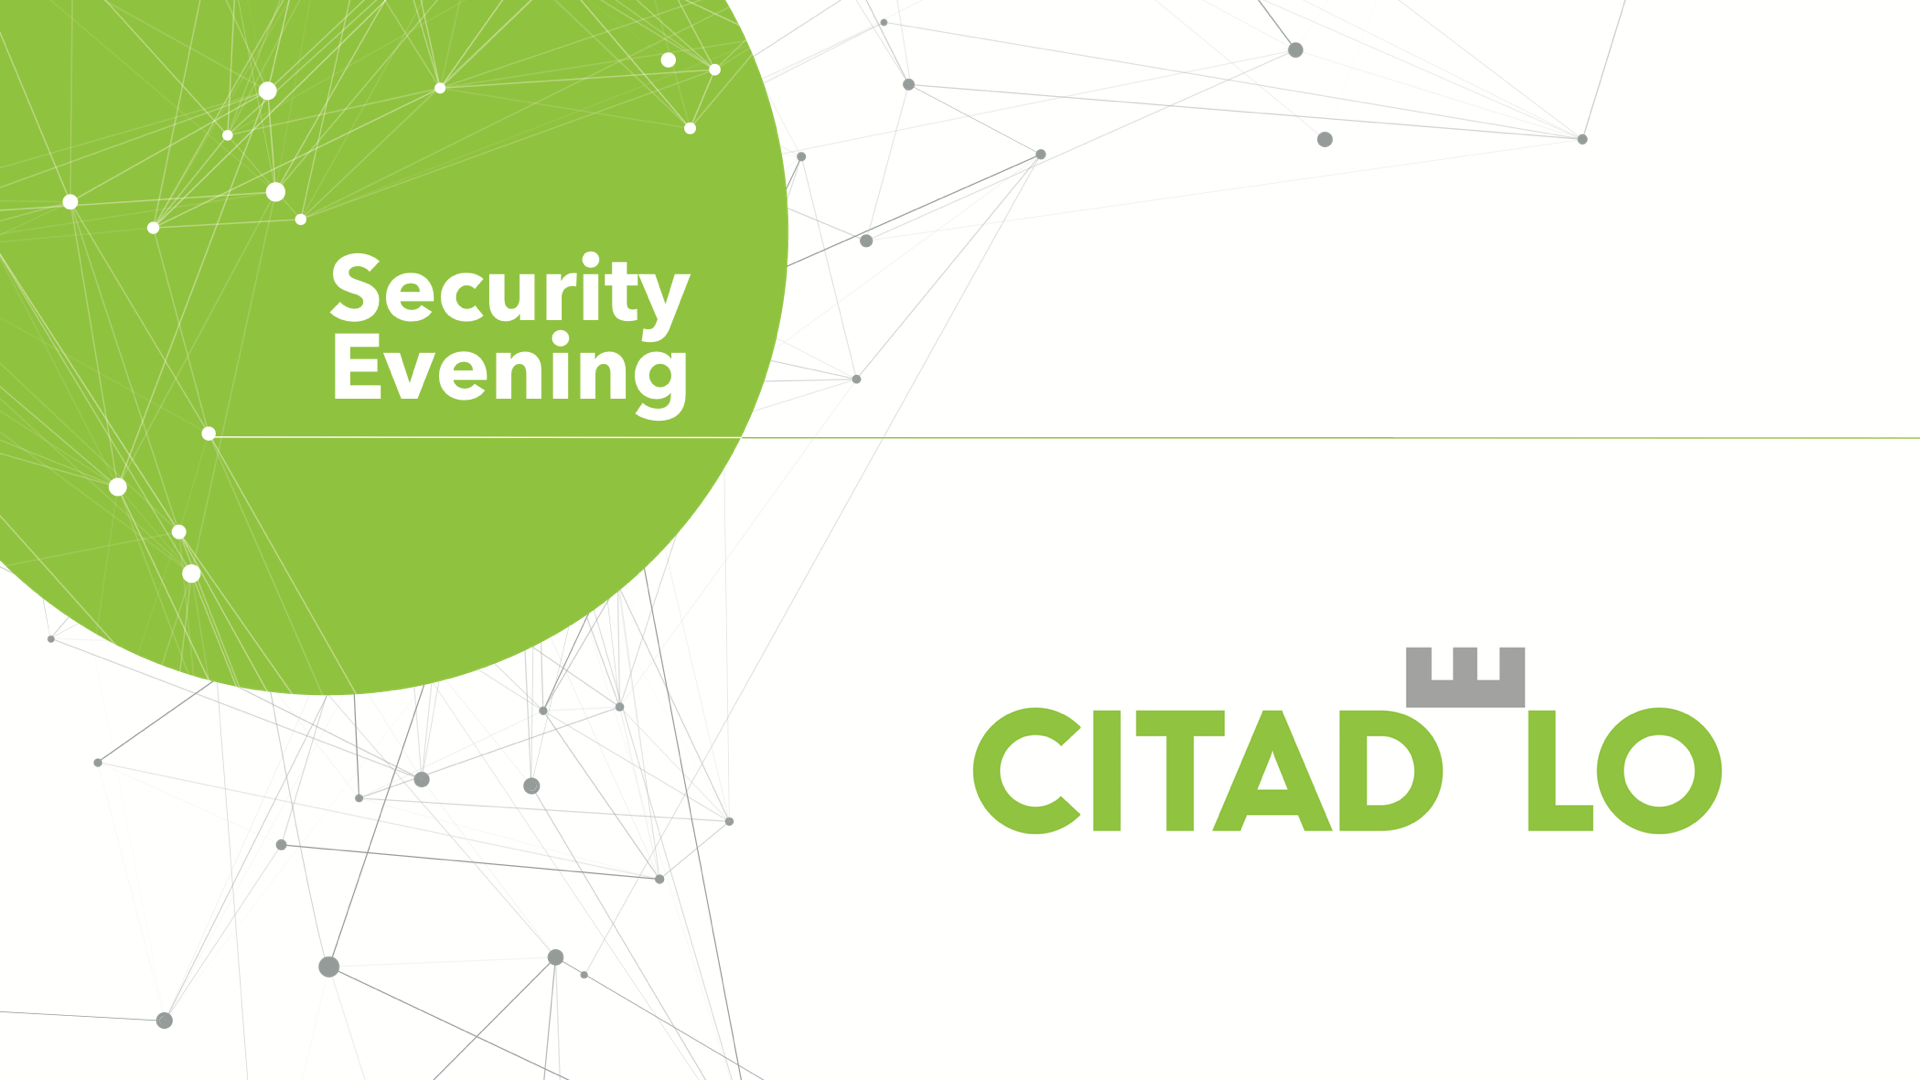 citadelo-security-evening